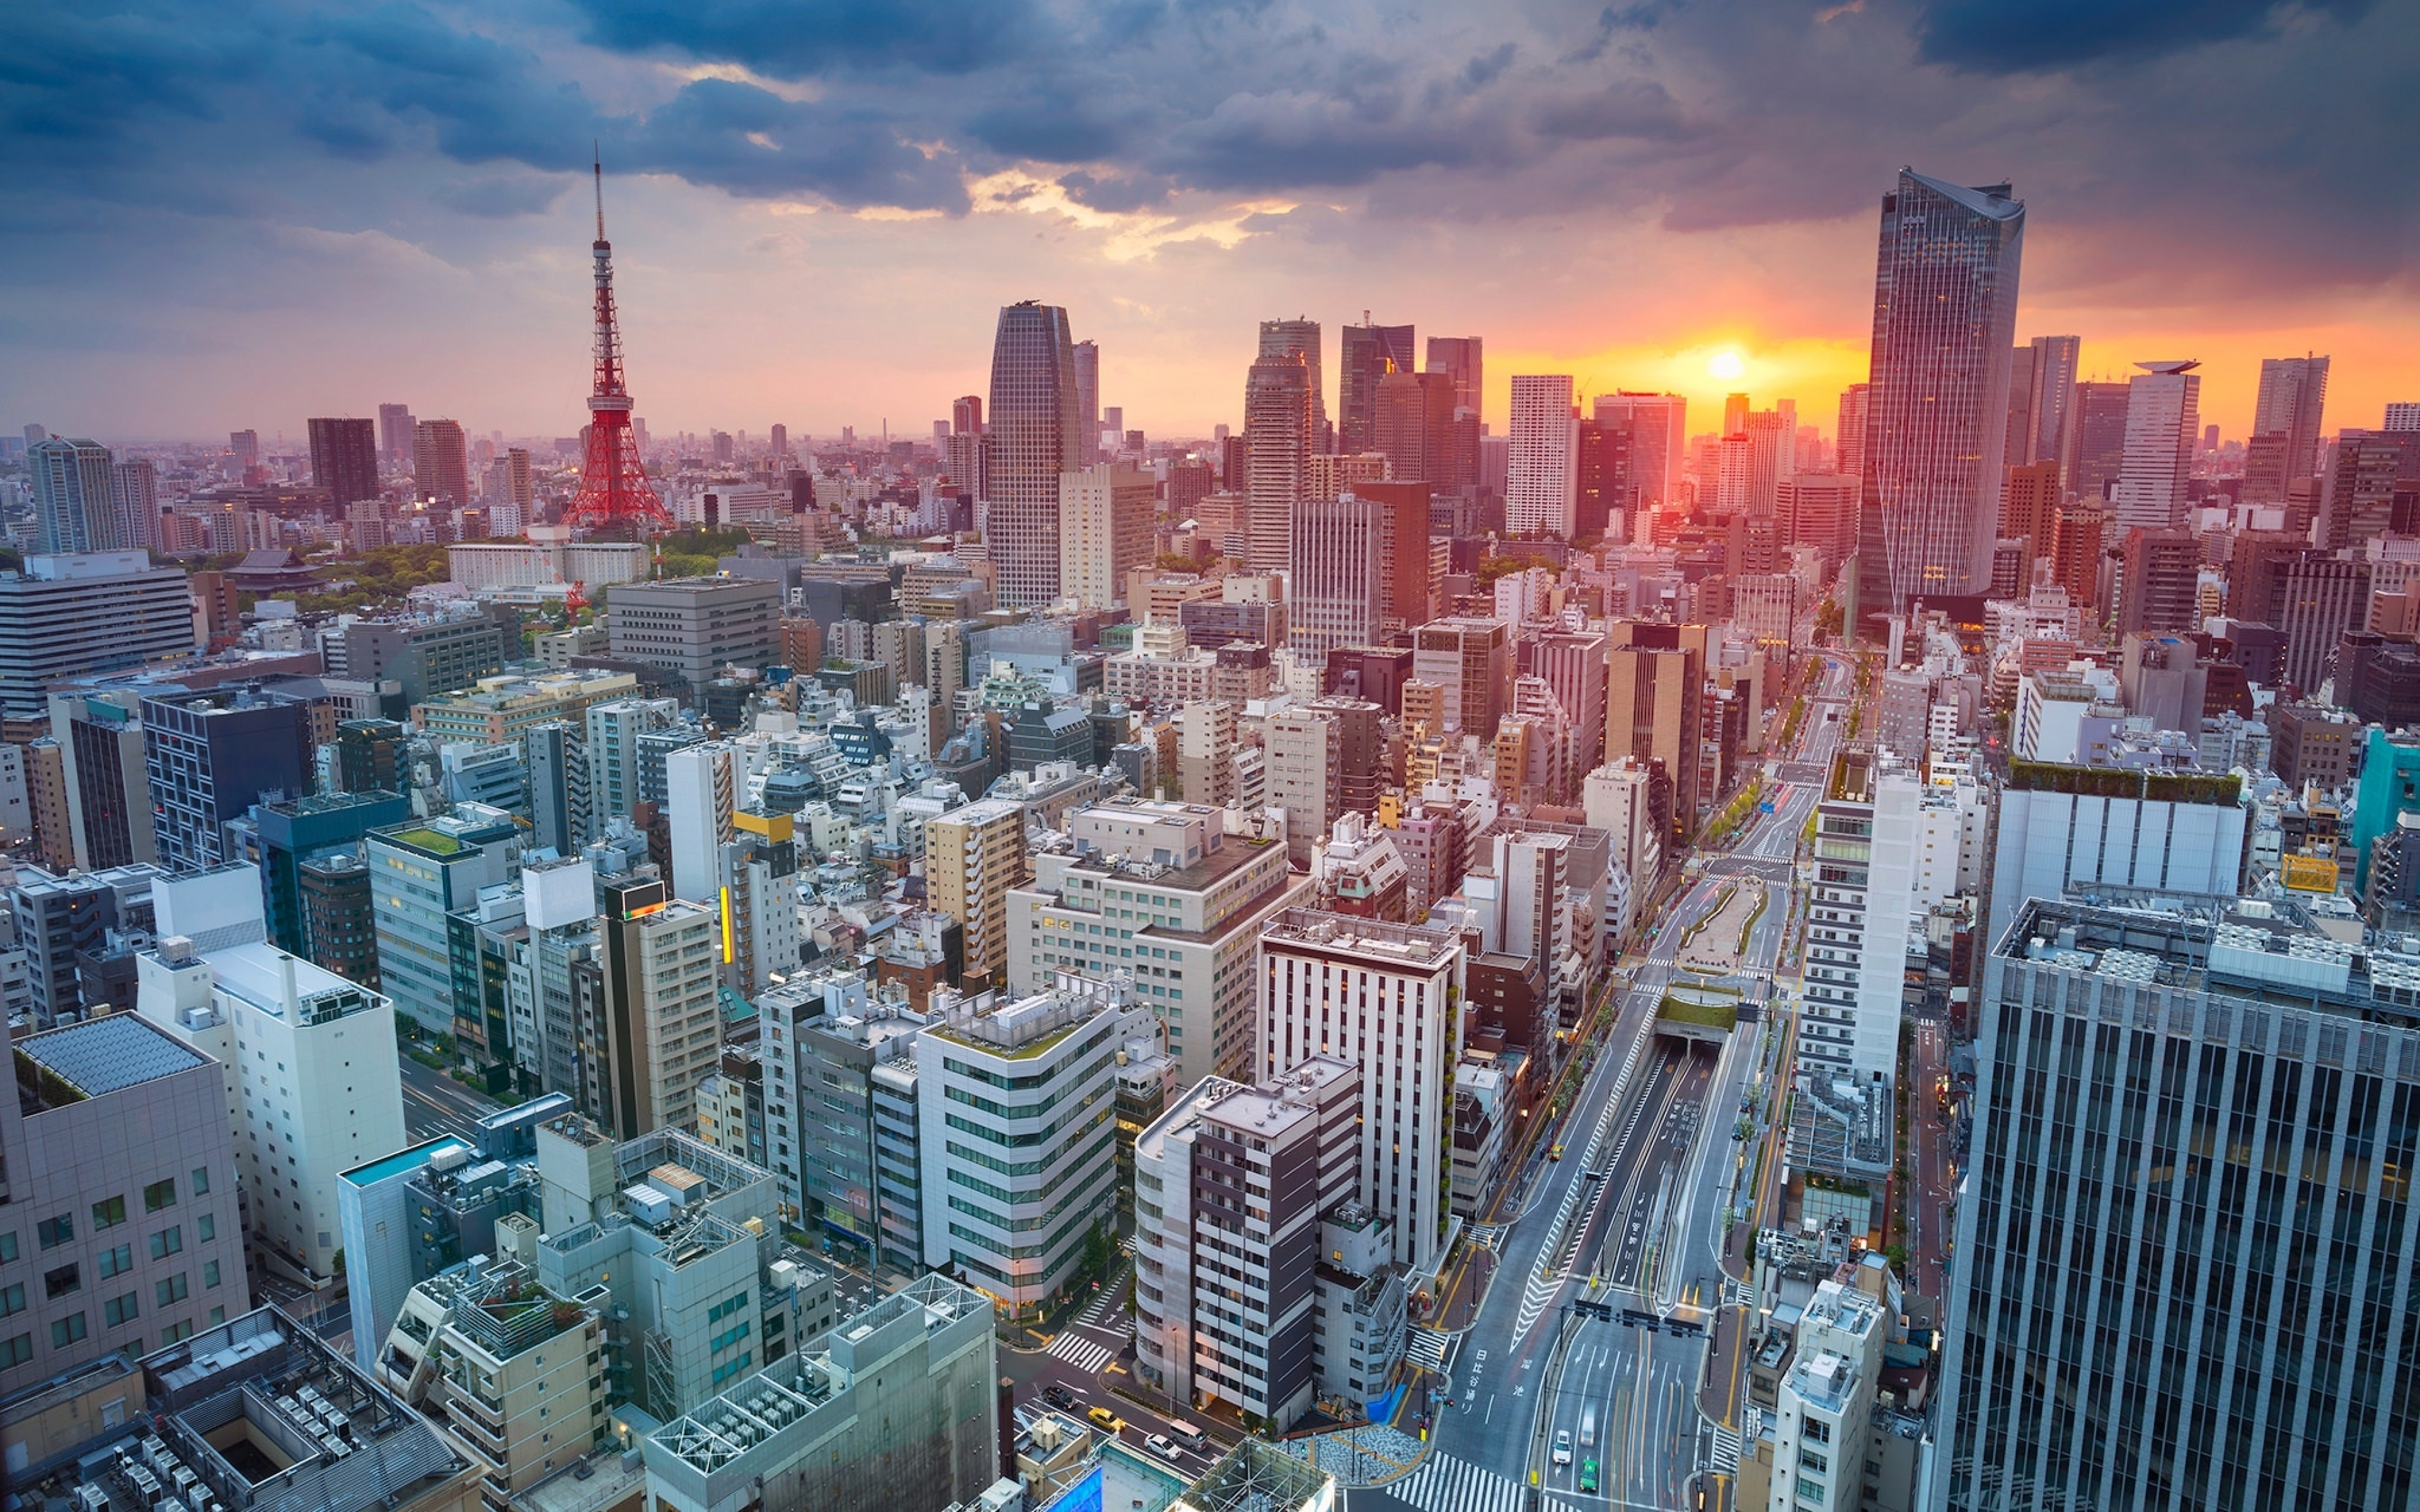 Tokyo skycrapper building sunset cityscape full hd 2k wallpaper - 1366x768 is 720p or 1080p ...